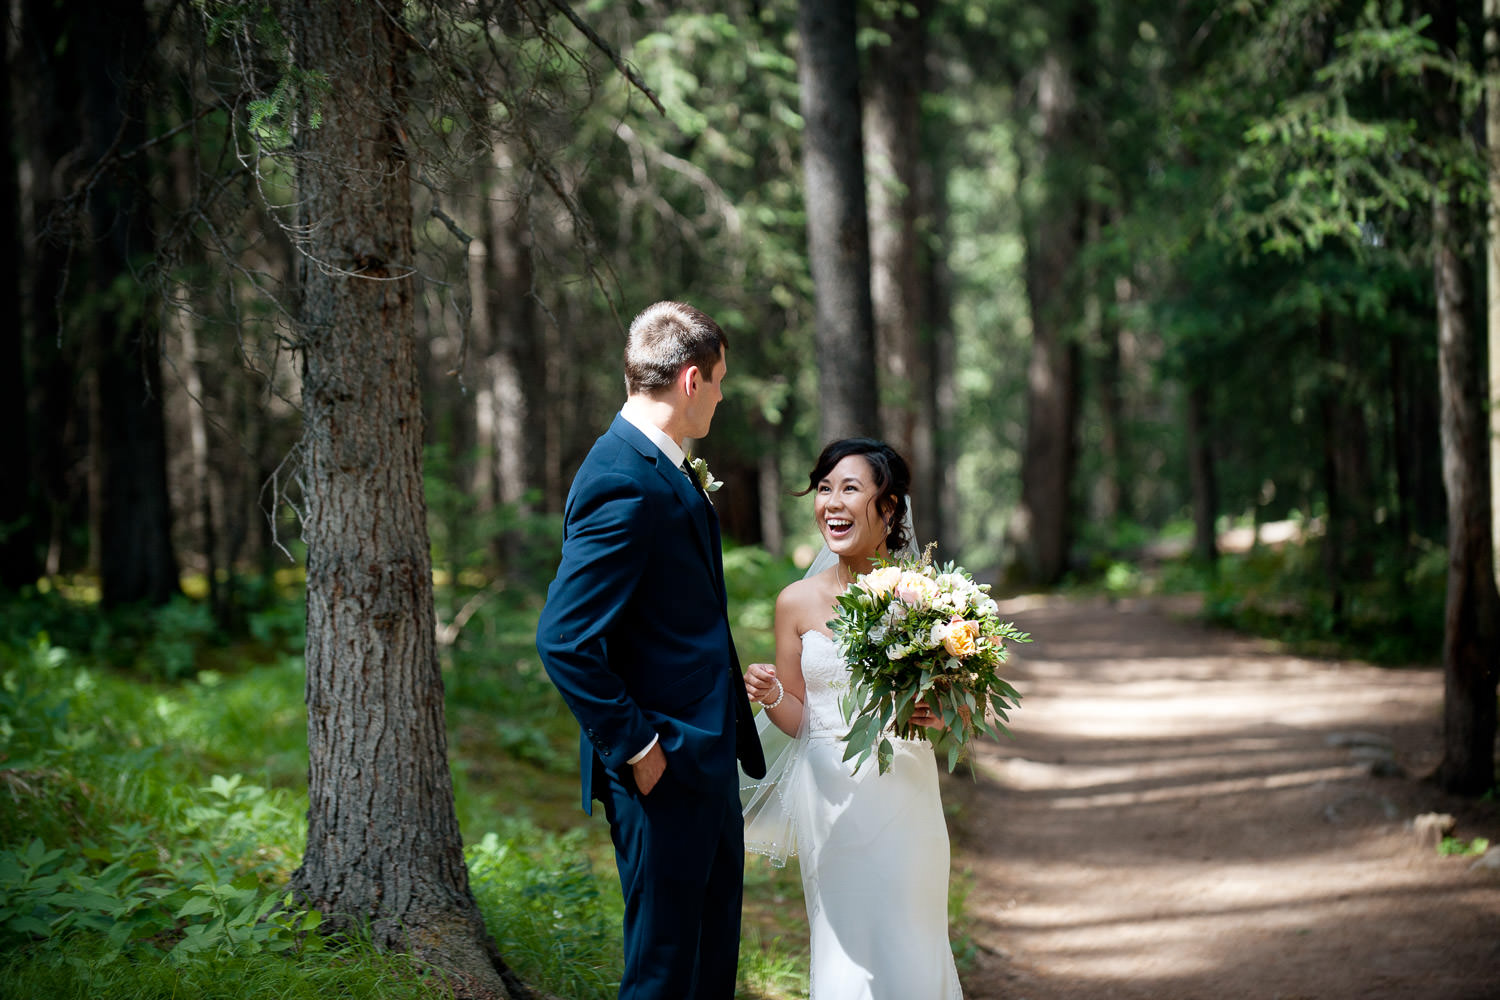 first look during a Banff Elopement captured by Tara Whittaker Photography